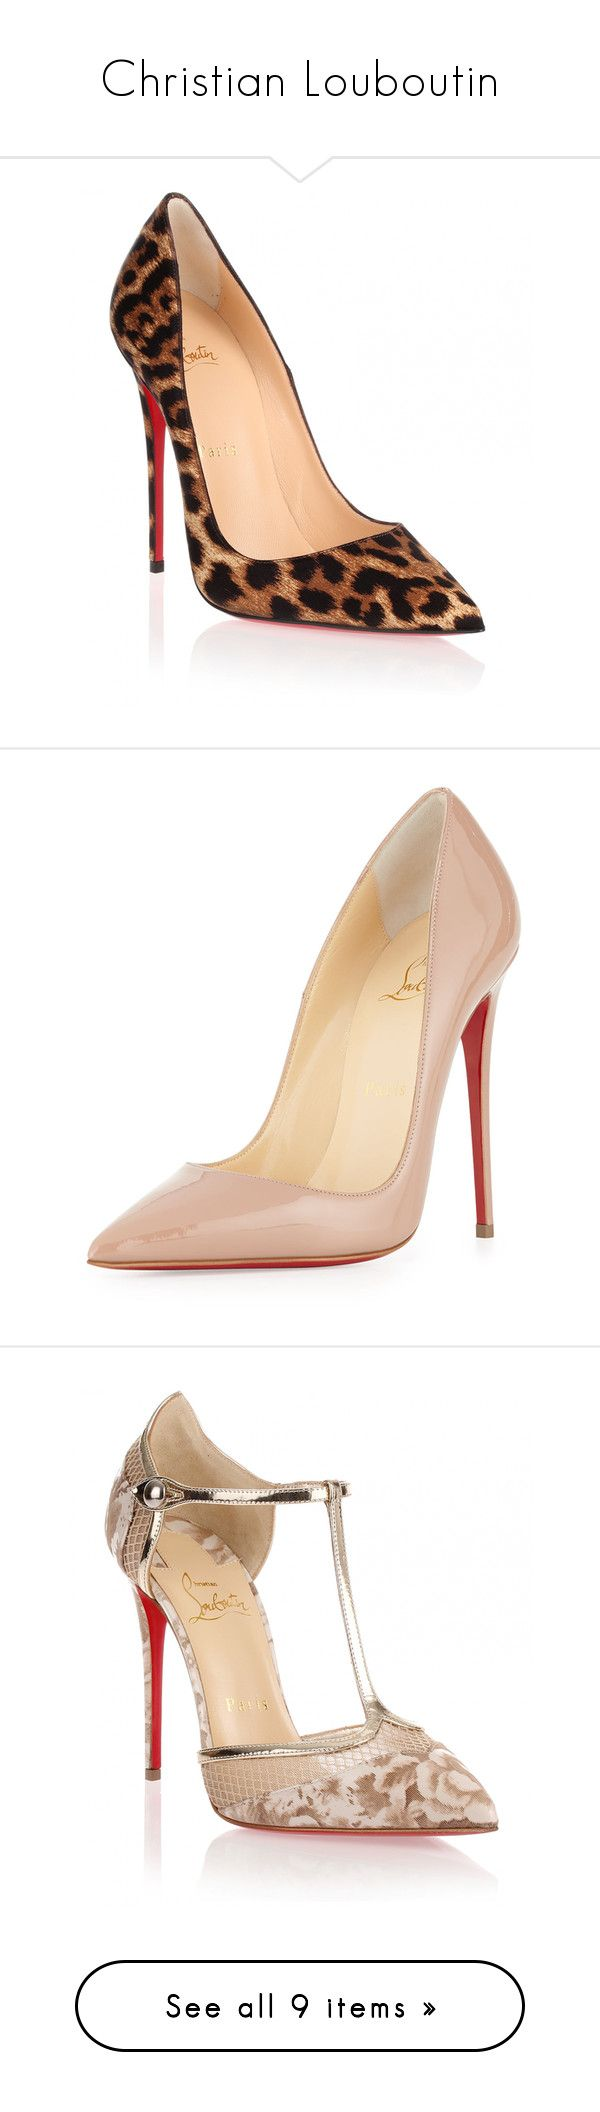 """""""Christian Louboutin"""" by lovelyfranckie ❤ liked on Polyvore featuring shoes, christianlouboutin, pumps, heels, christian louboutin, louboutin, brown, high heeled footwear, high heel stilettos and pointed toe pumps"""